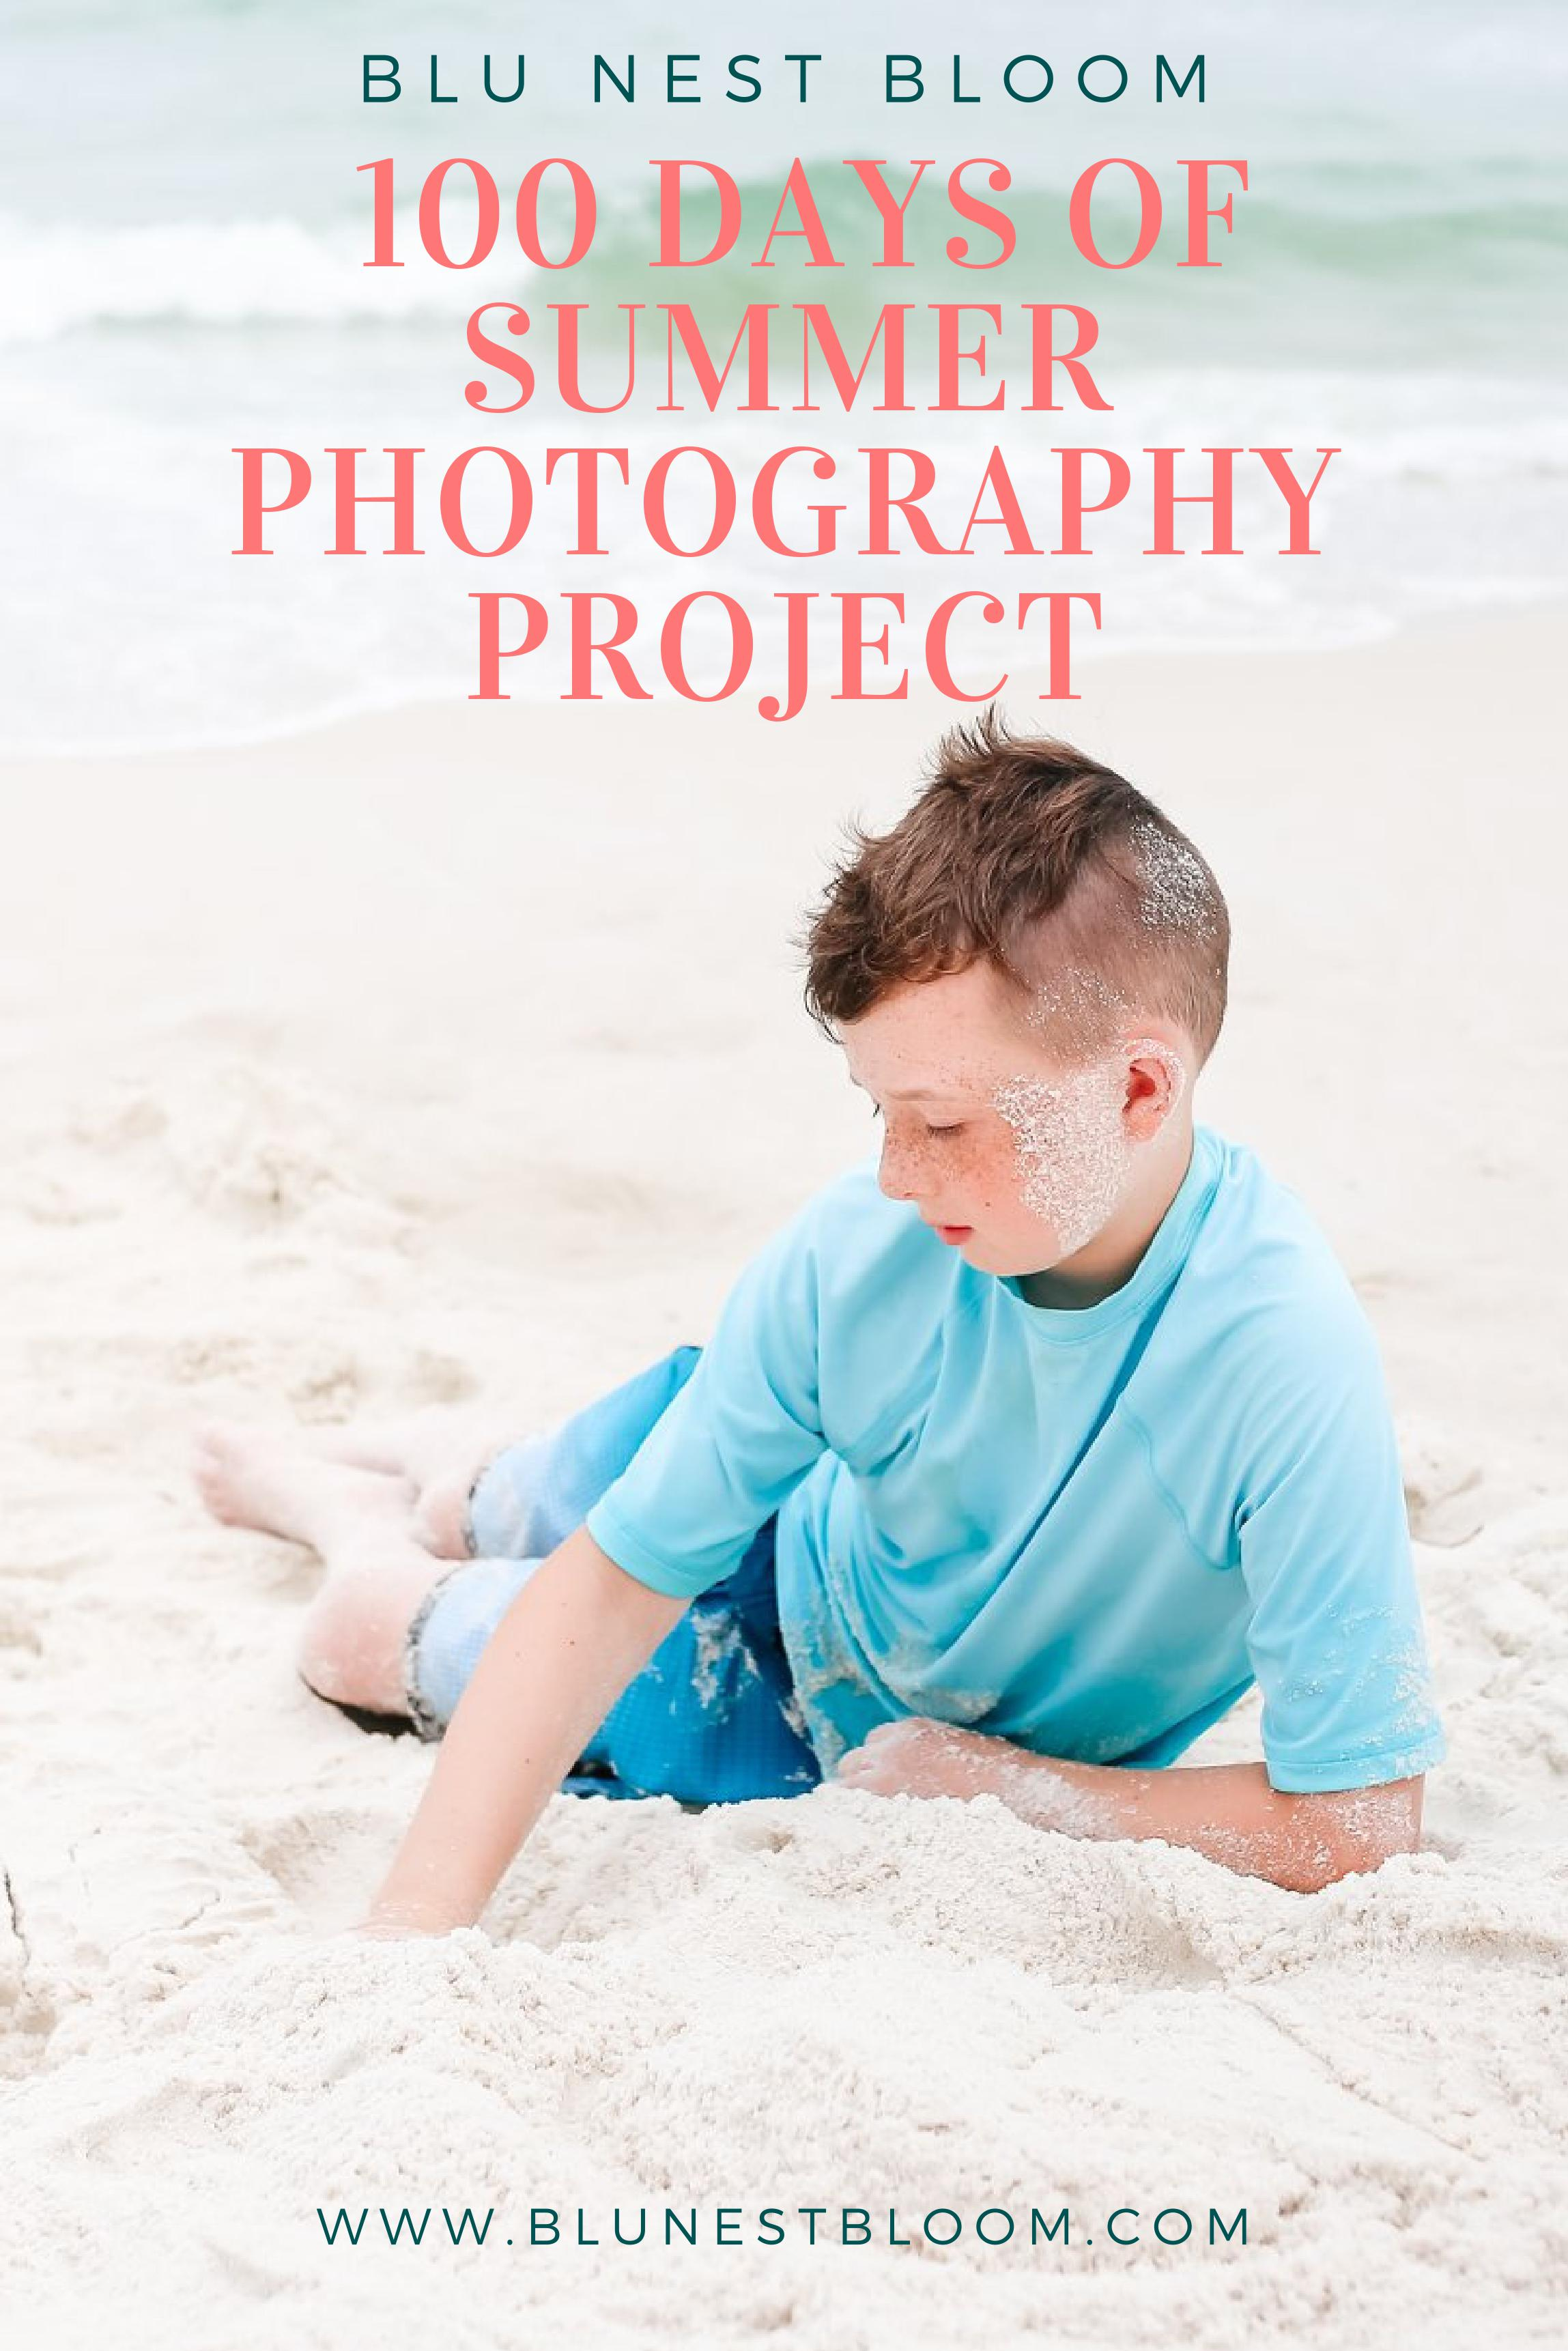 100 Days of Summer Photography Project